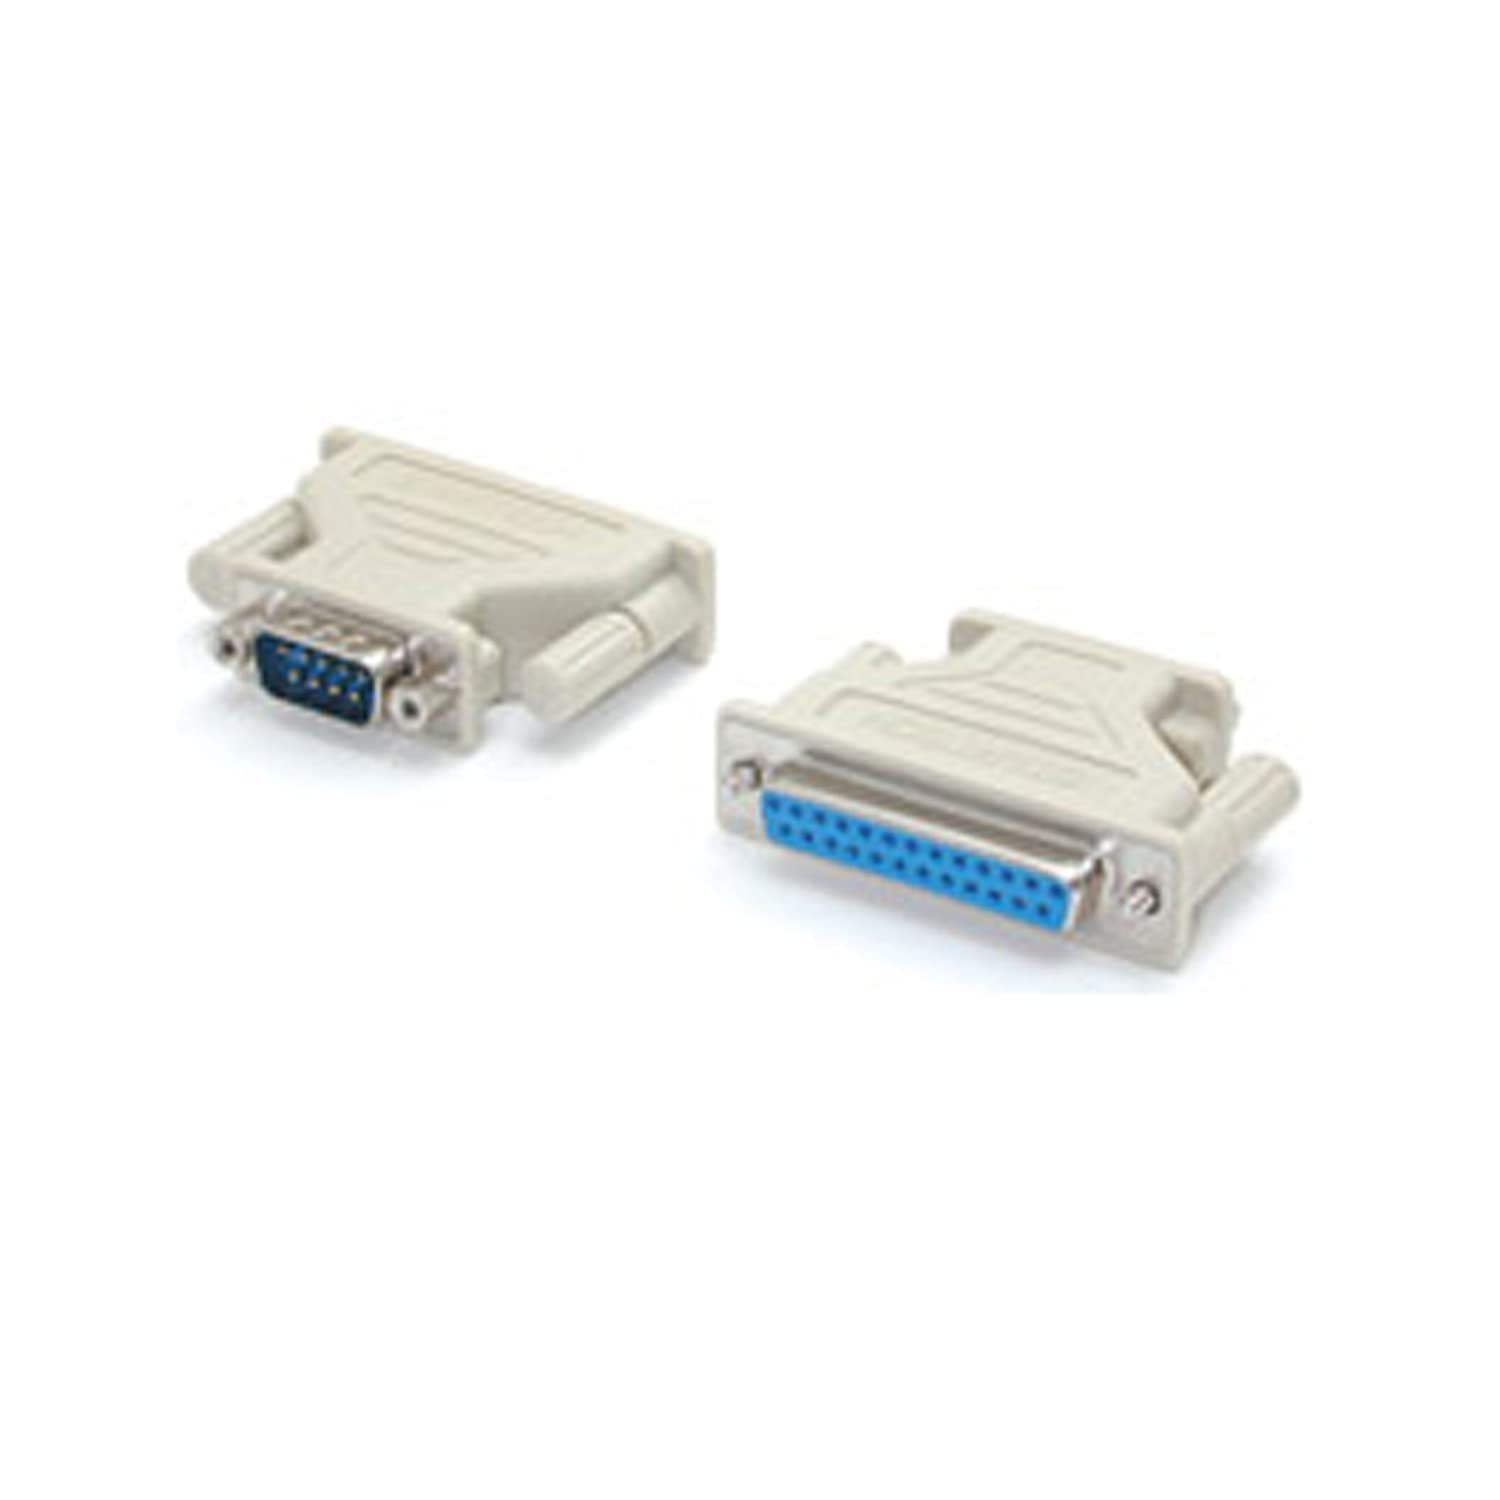 Beige C2G 02446 DB9 Female to DB25 Male Serial RS232 Adapter